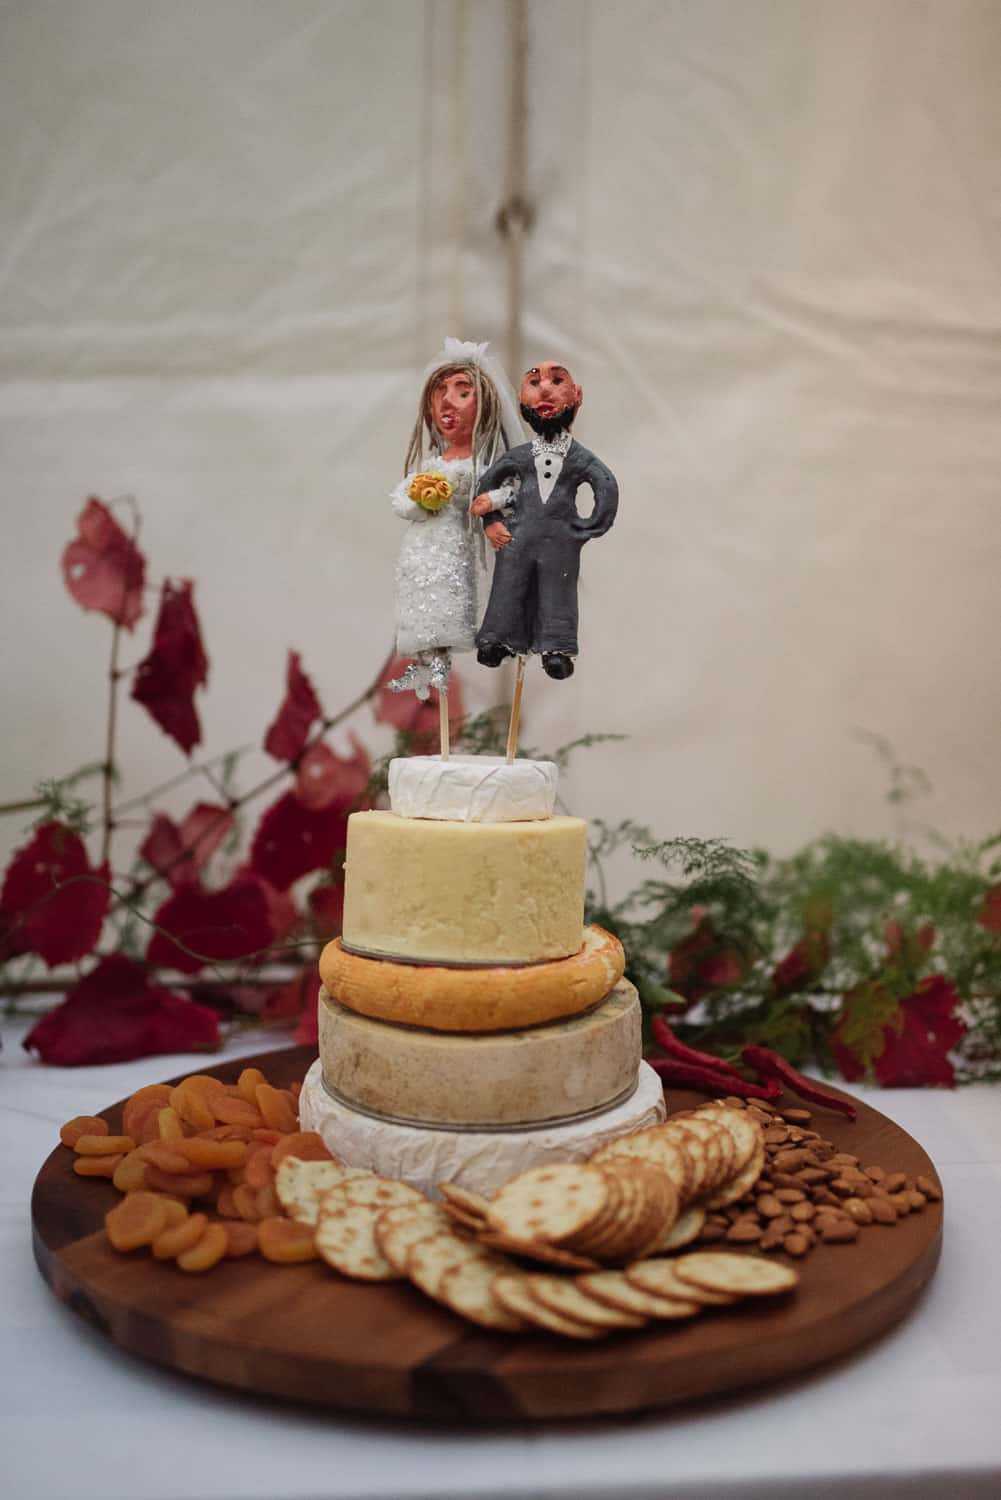 Cheese wheel cake with custom toppers